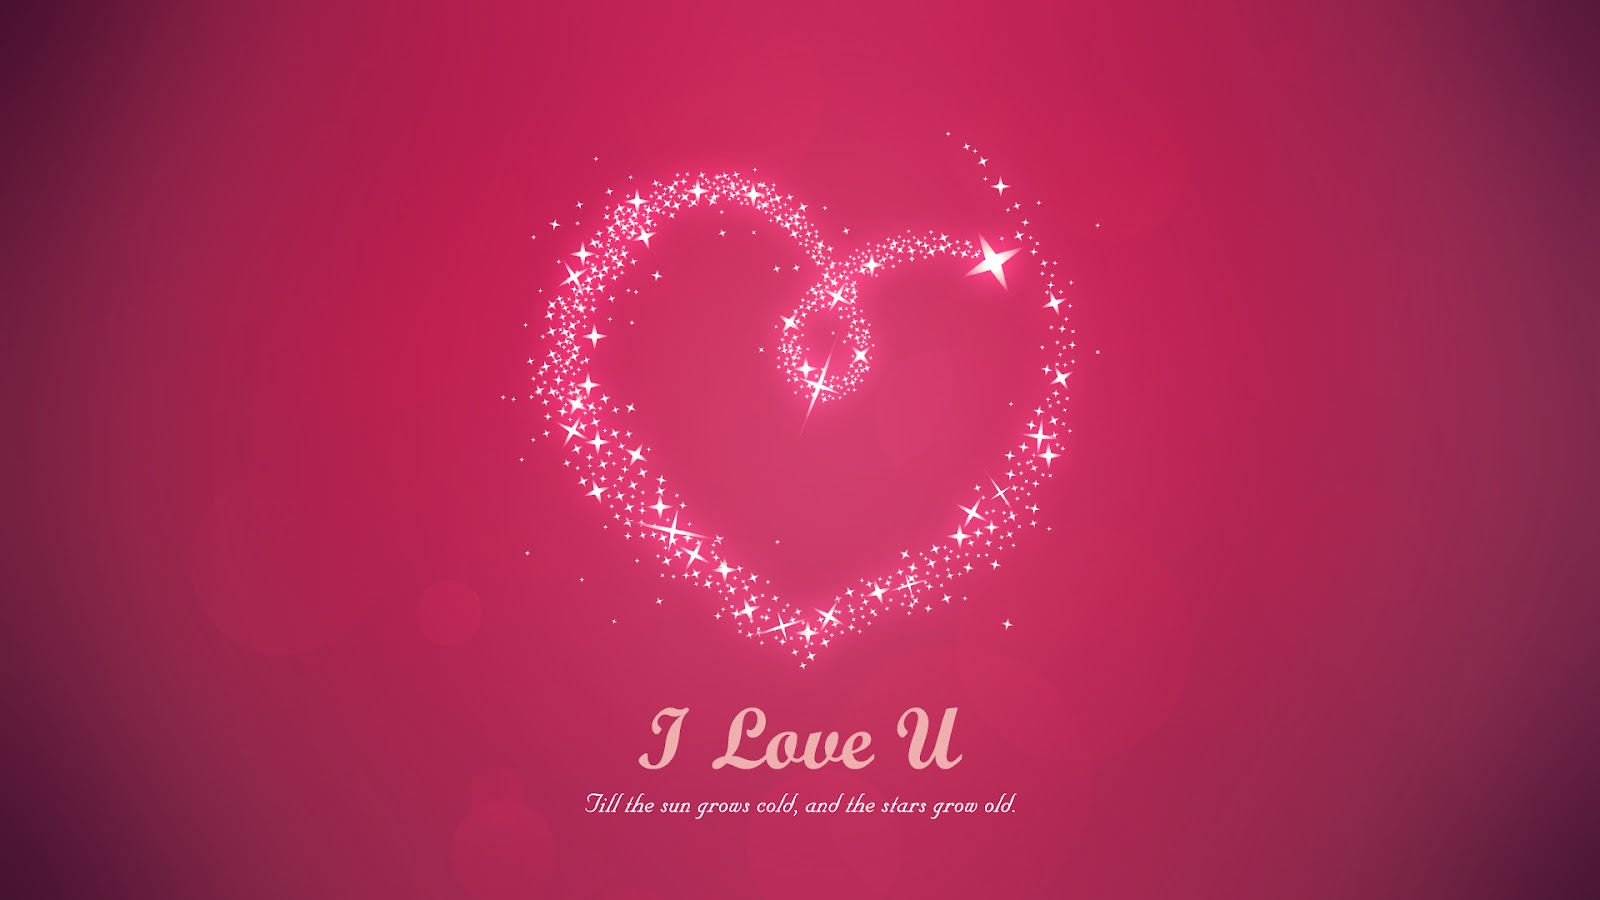 Love Wallpaper N Quotes : i love u wallpapers love wallpapers love quotes wallpapers sad love wallpapers sad ...